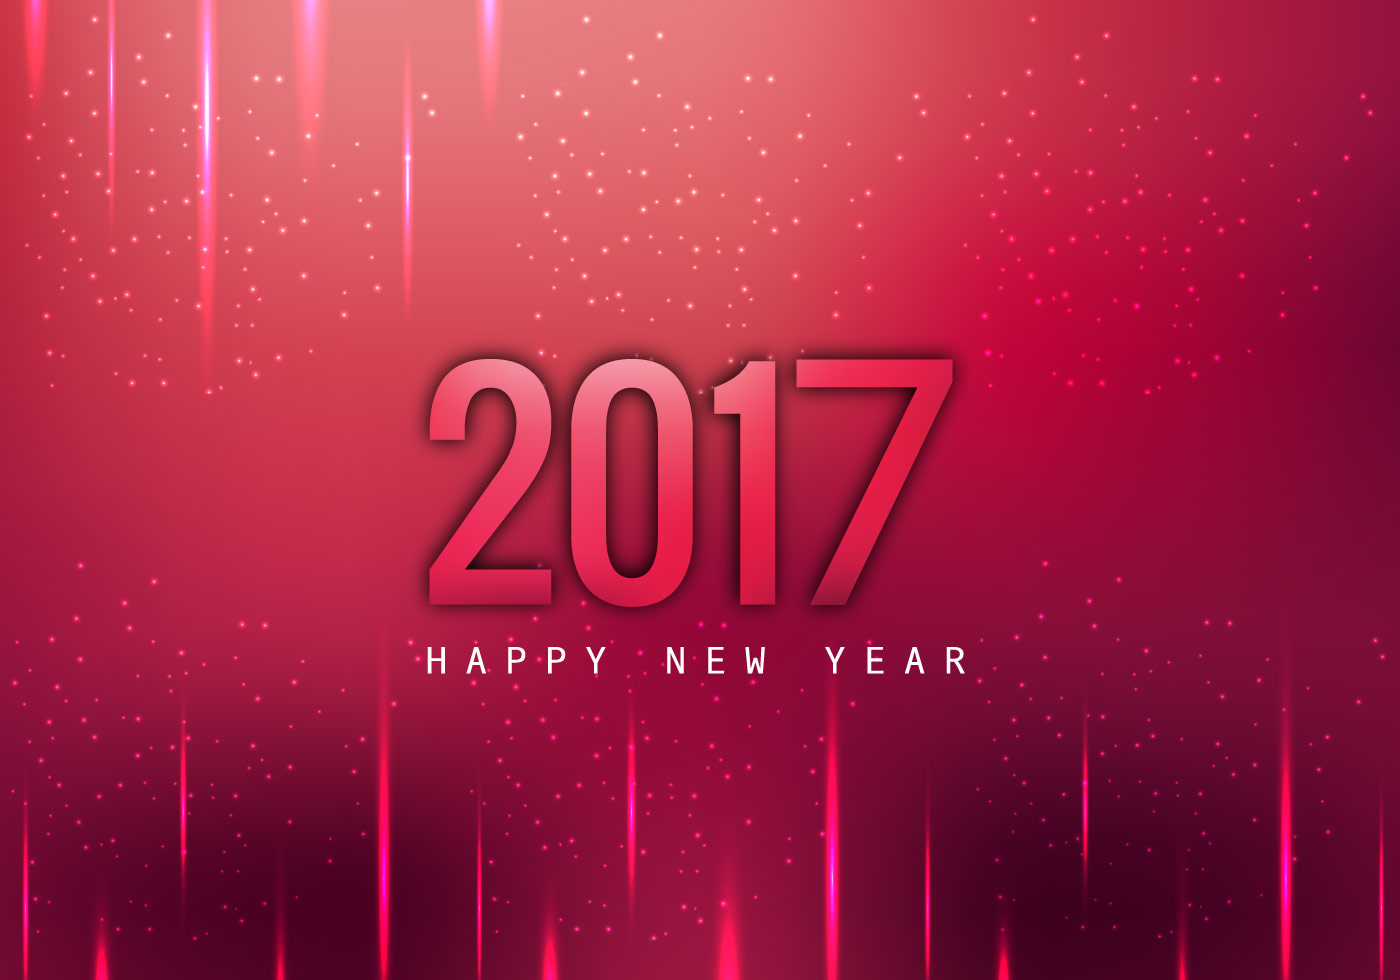 Happy New Year Card Free Vector Art(8740 Free Downloads)